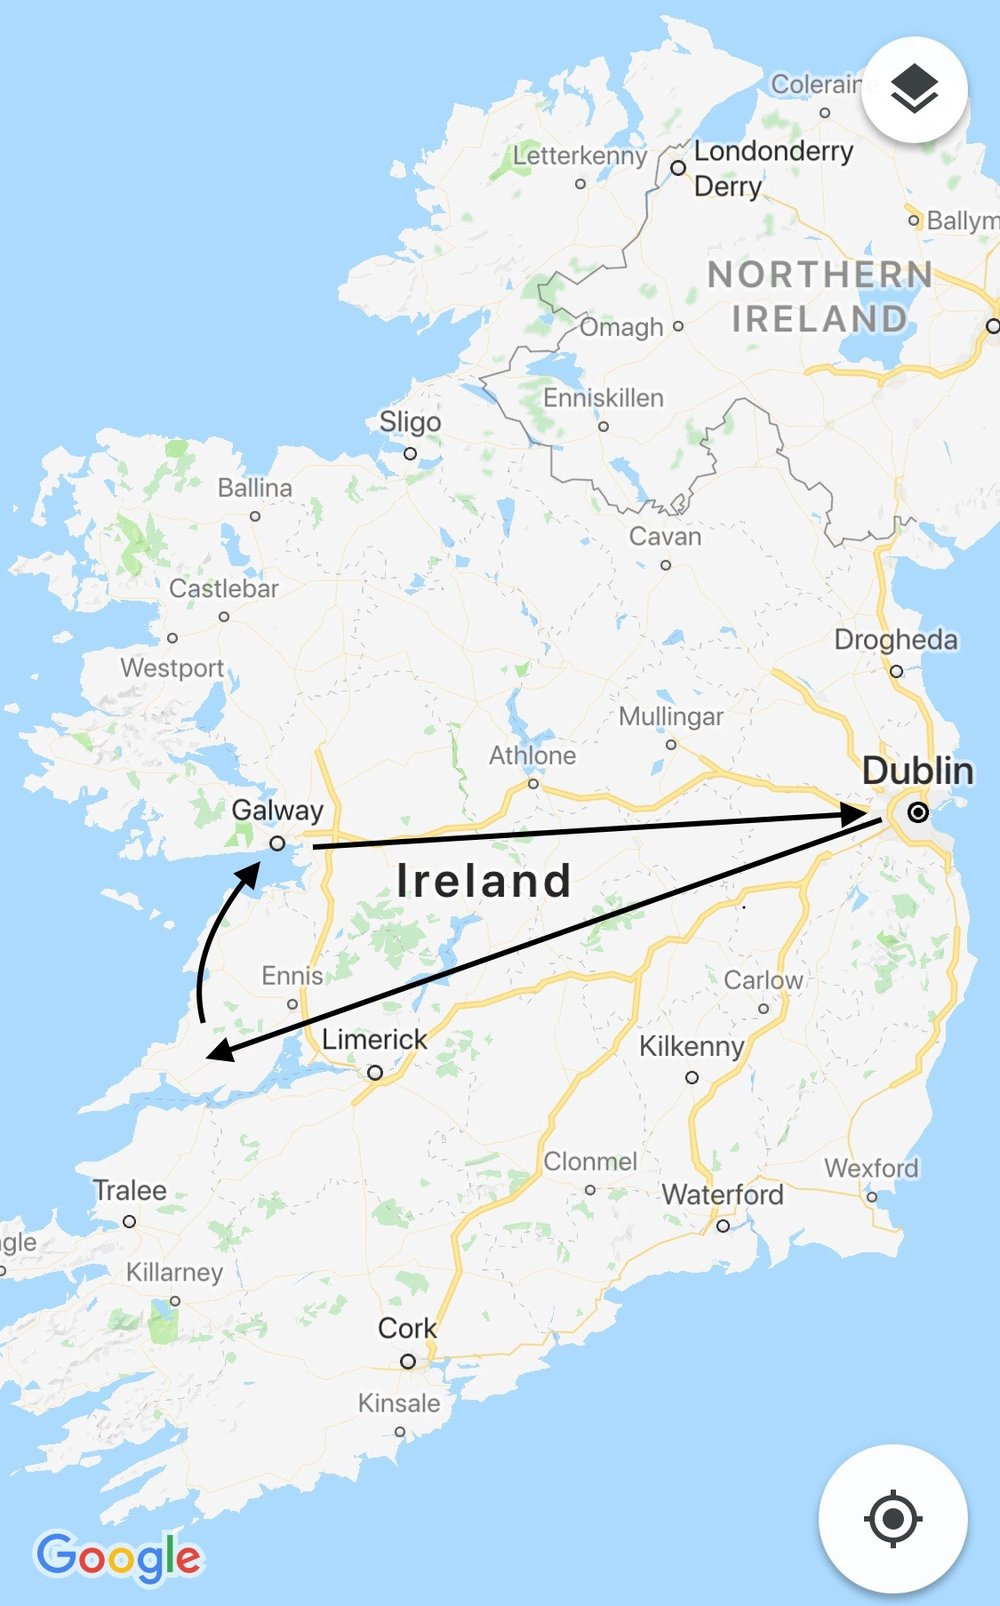 - Day 2 on the Emerald Isle was spent on a tour of the western side of Ireland. From Dublin to the Cliffs of Moher to Galway, the loop we made was a classic trek across the country, and took no more than 3.5 hours in either direction.